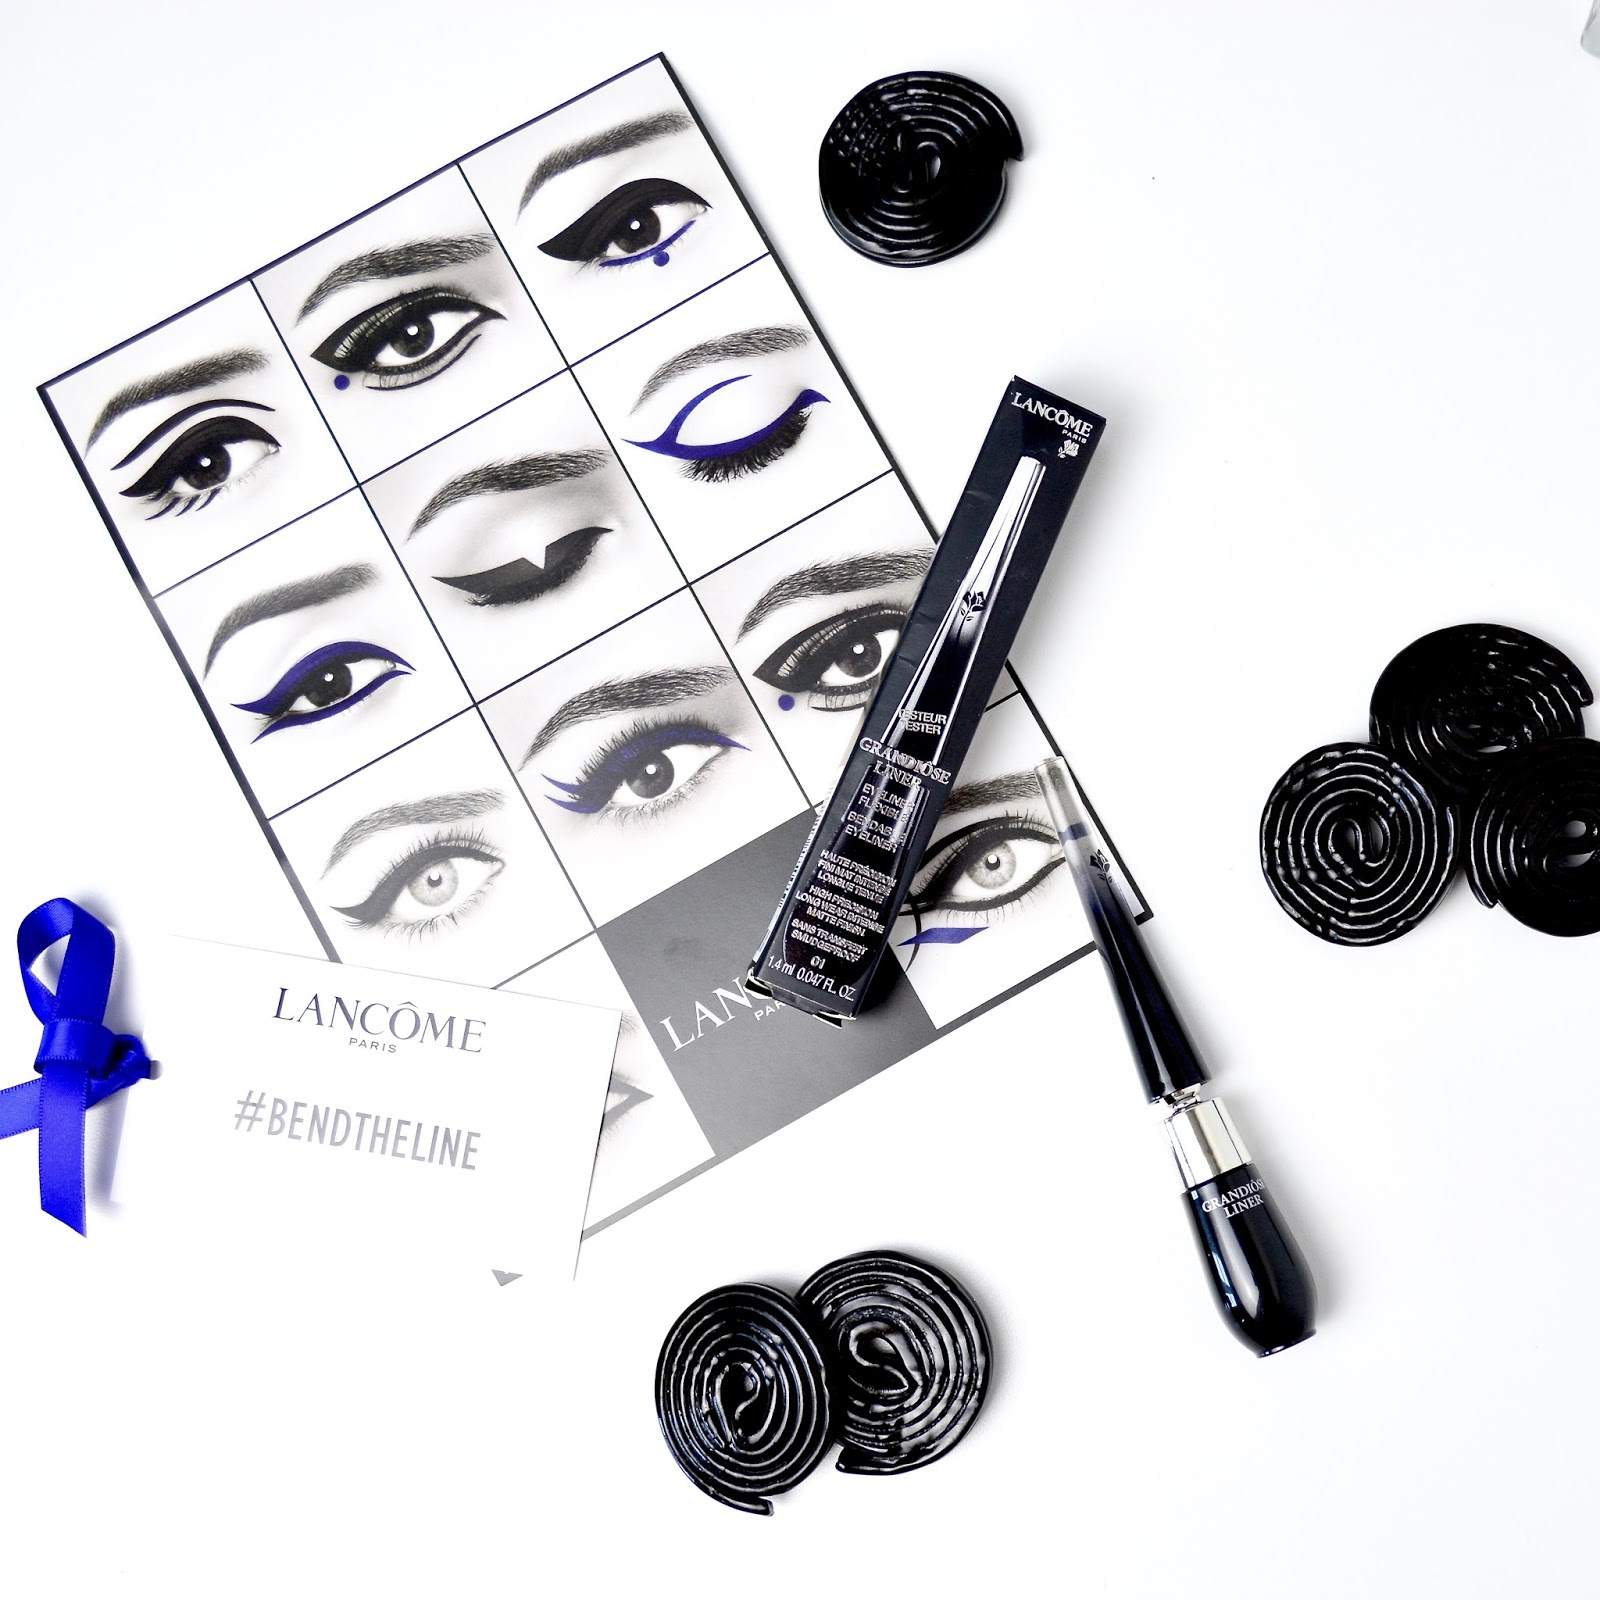 Lancome, Lancome Grandiose Liner, Bend The Line, Eyeliner Flick, Perfect Flick, Winged Liner, Liner, Eyeliner, Makeup,